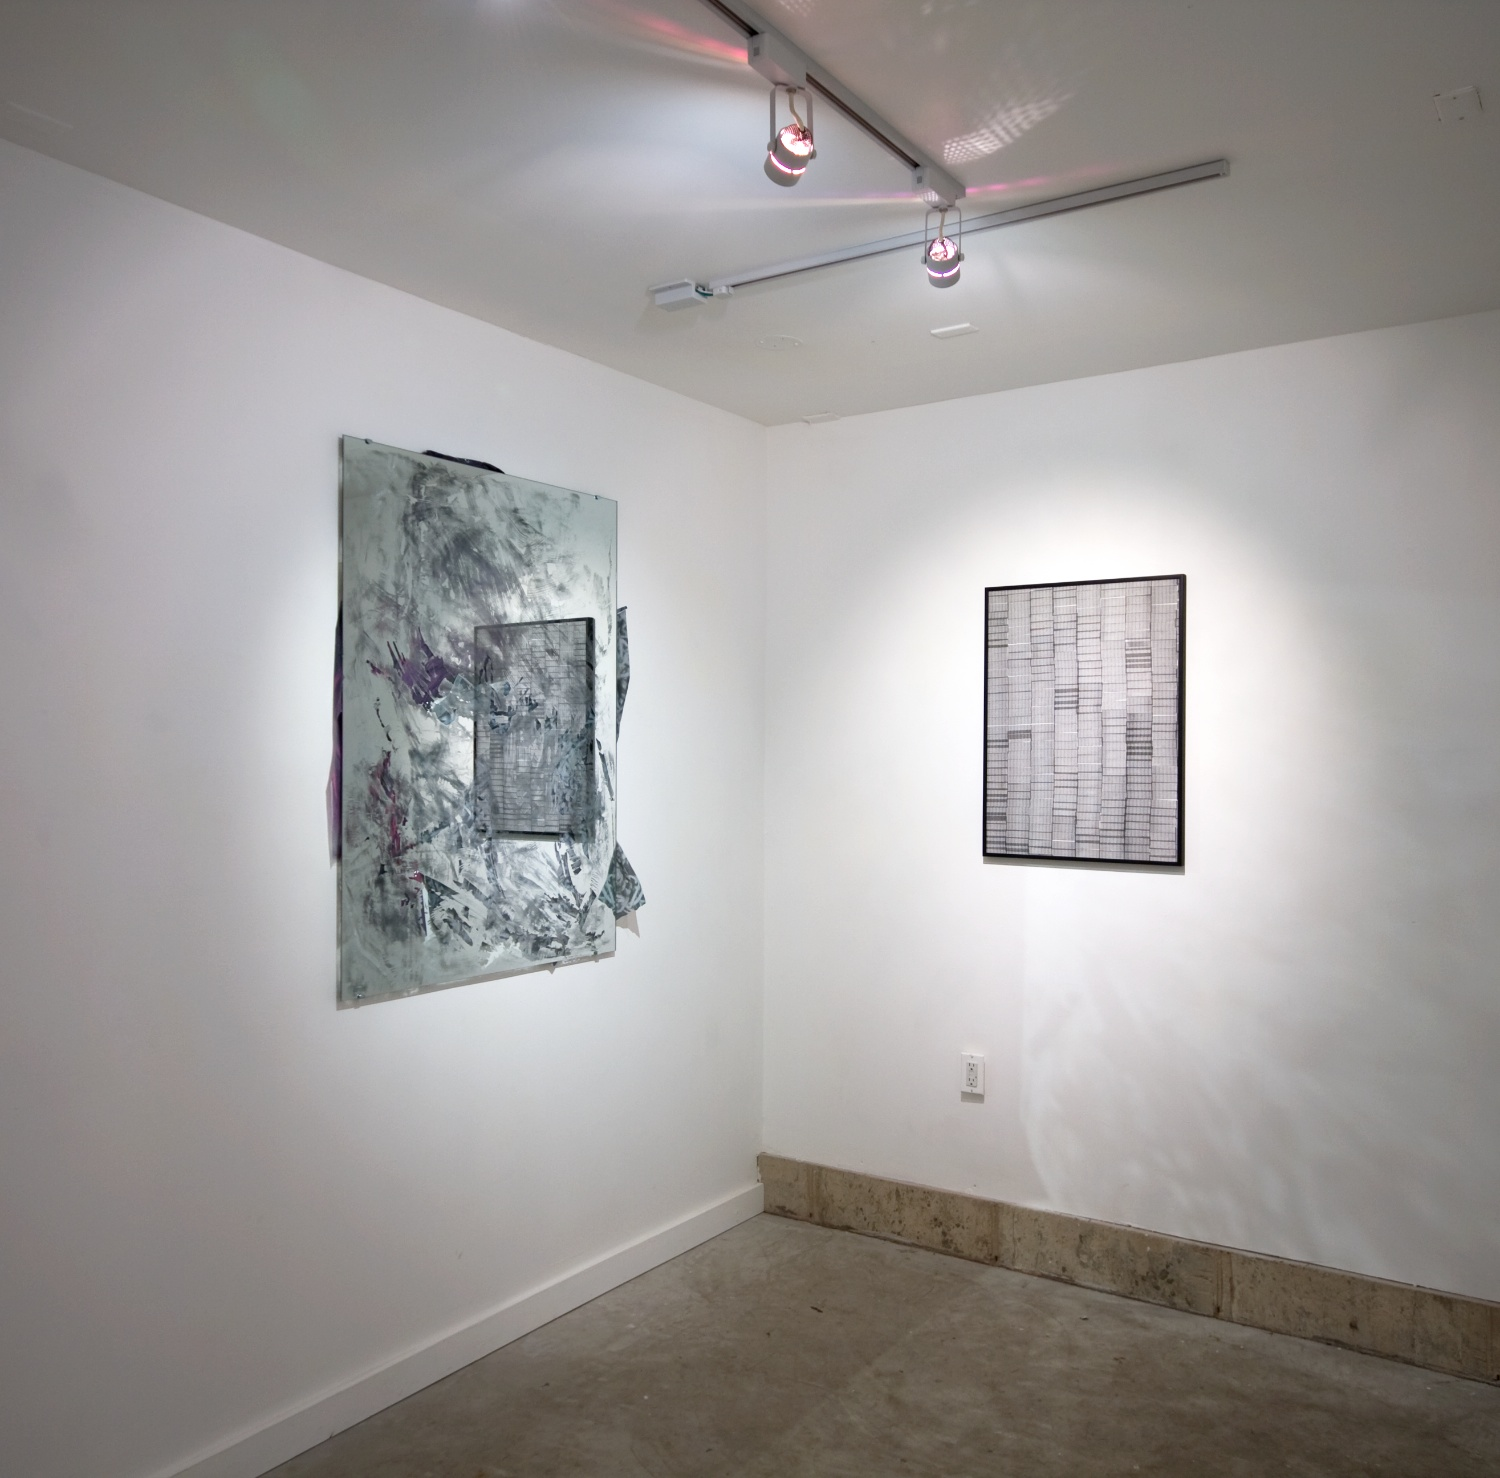 Zak Kitnick and Valerie Snobeck 2011 Shane Campbell Gallery, Oak Park Installation View